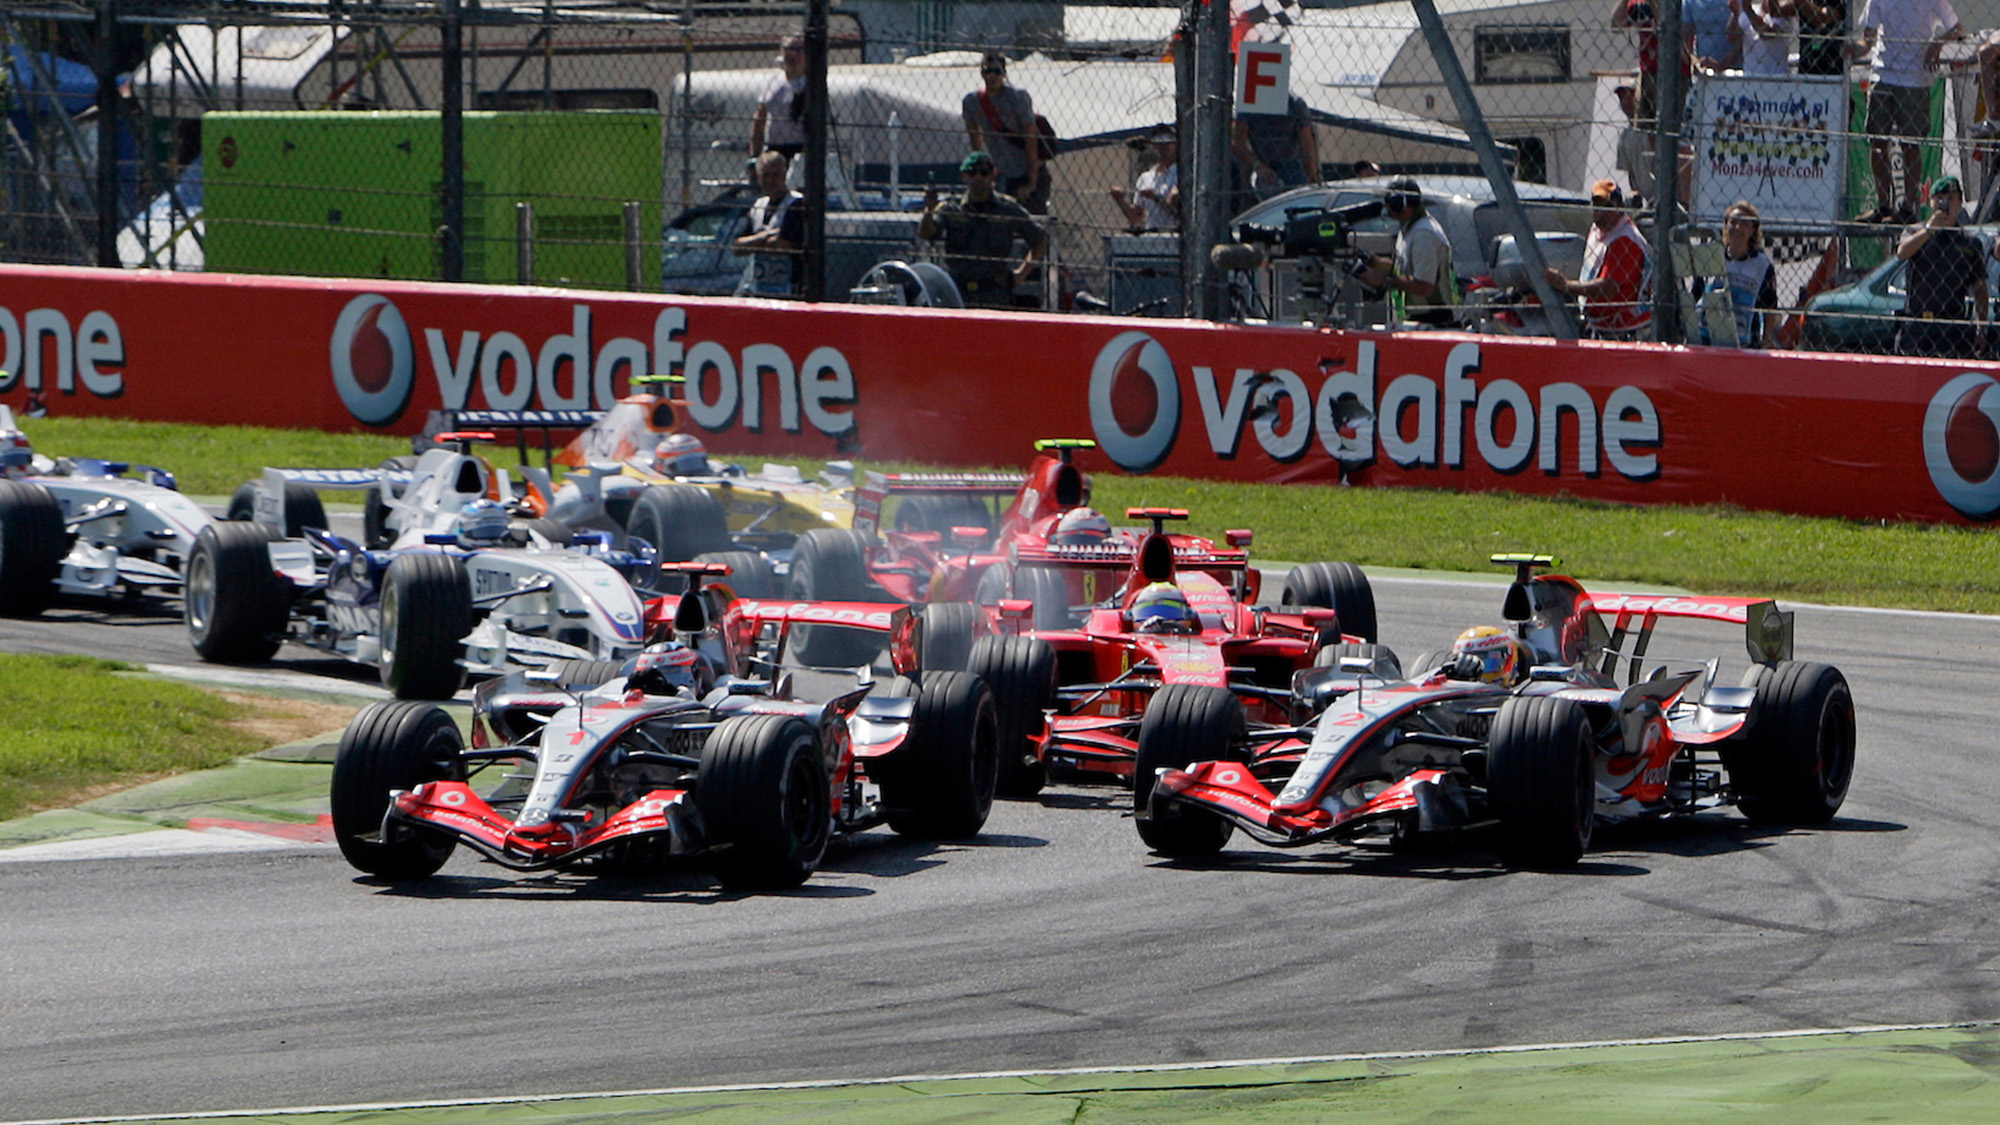 Lewis Hamilton and Fernando Alonso fight at Monza in 2007